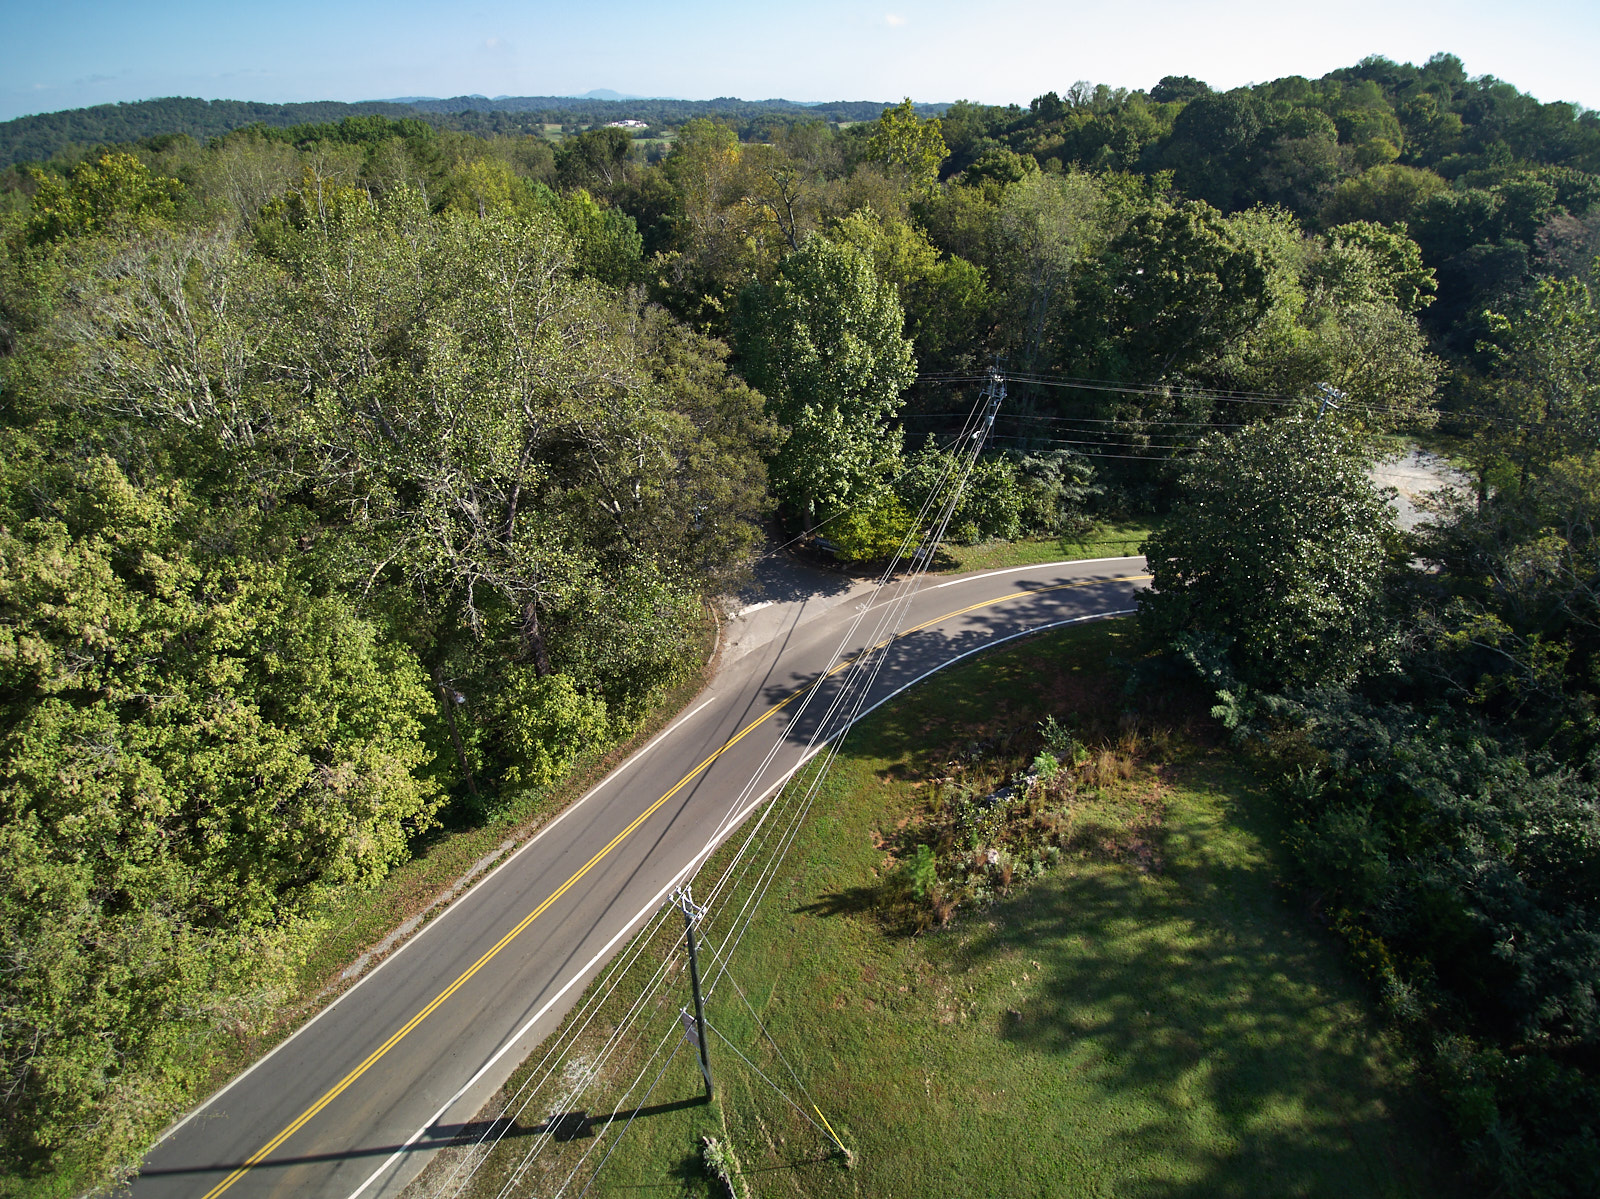 Drone Photography Ijams Nature Center New Entrance predesign Justin Fee Photography